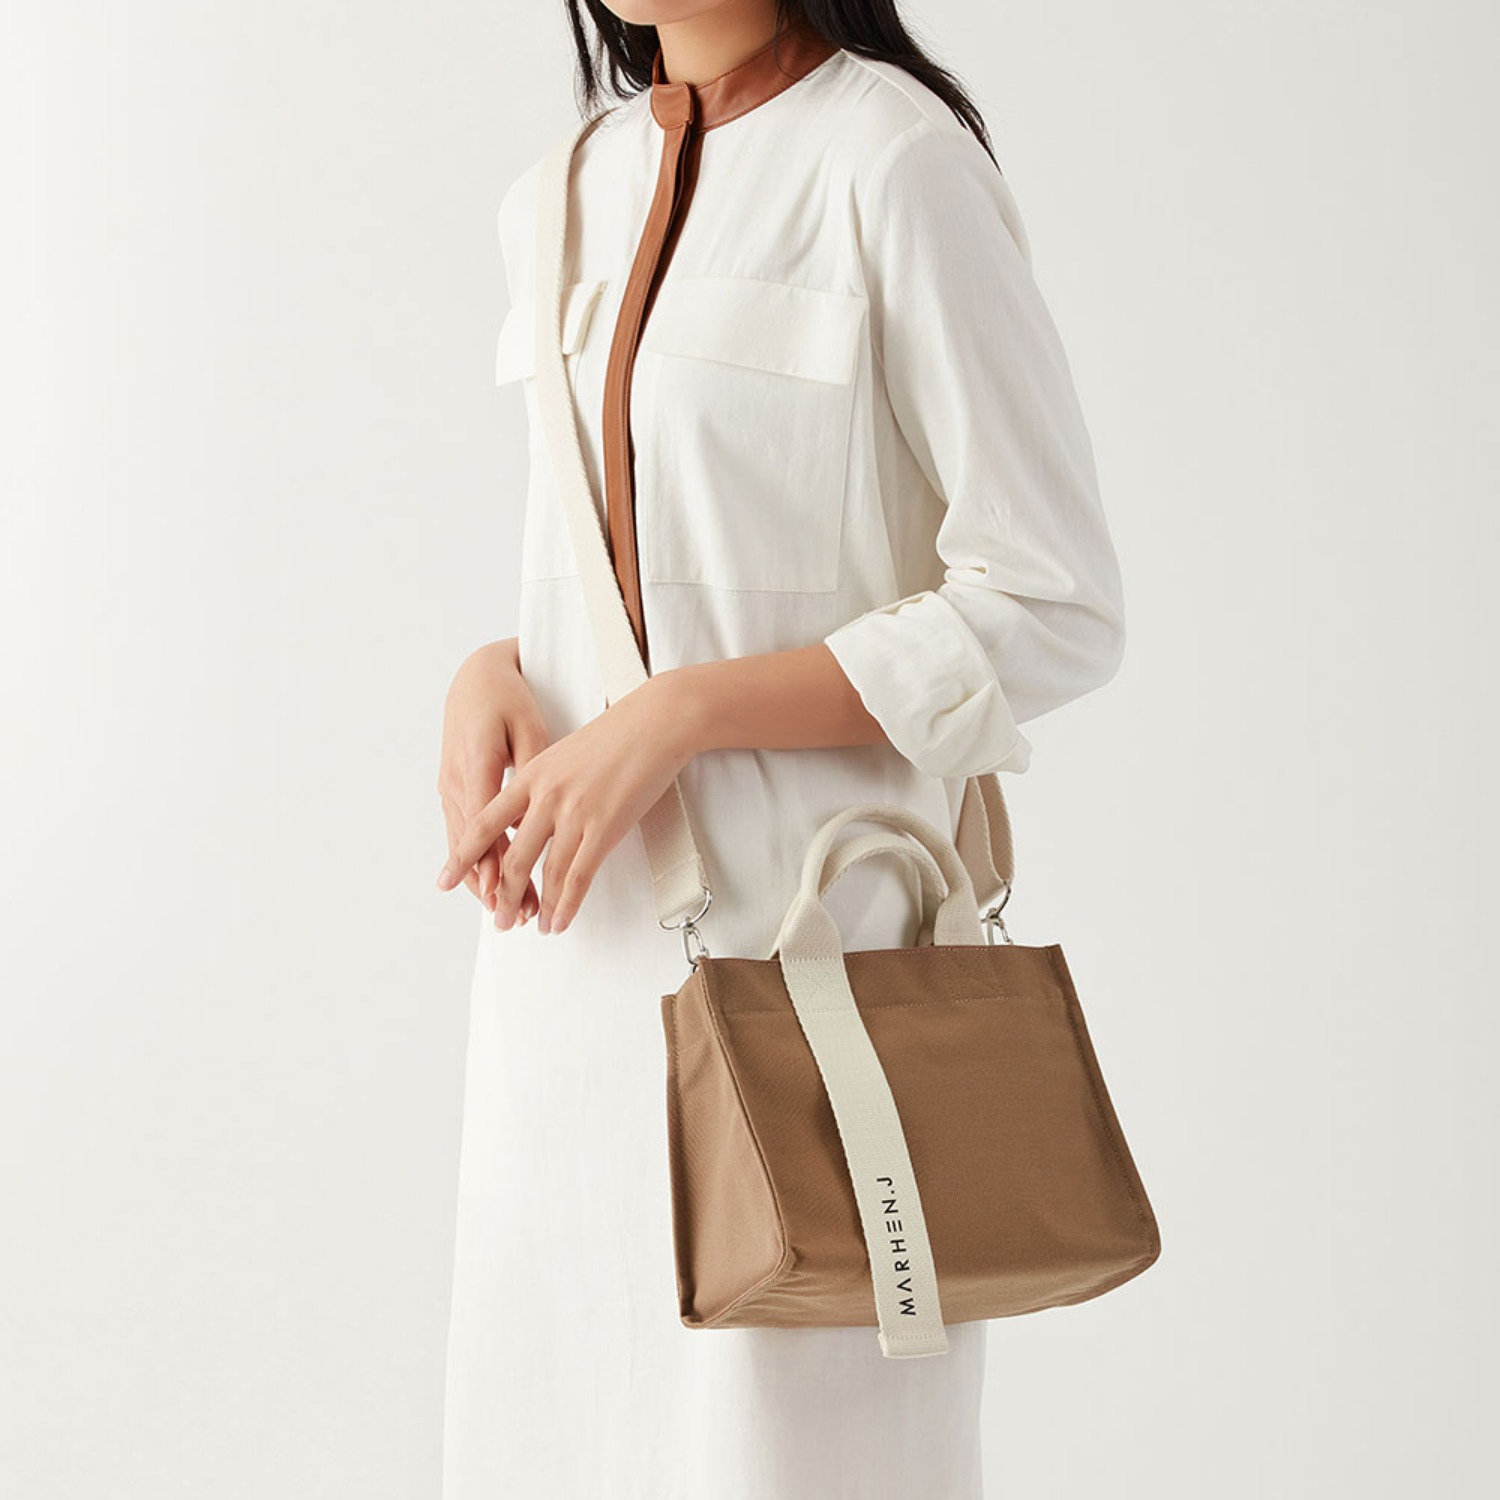 RICO MINI SAND BEIGE (Length adjustable strap is included)